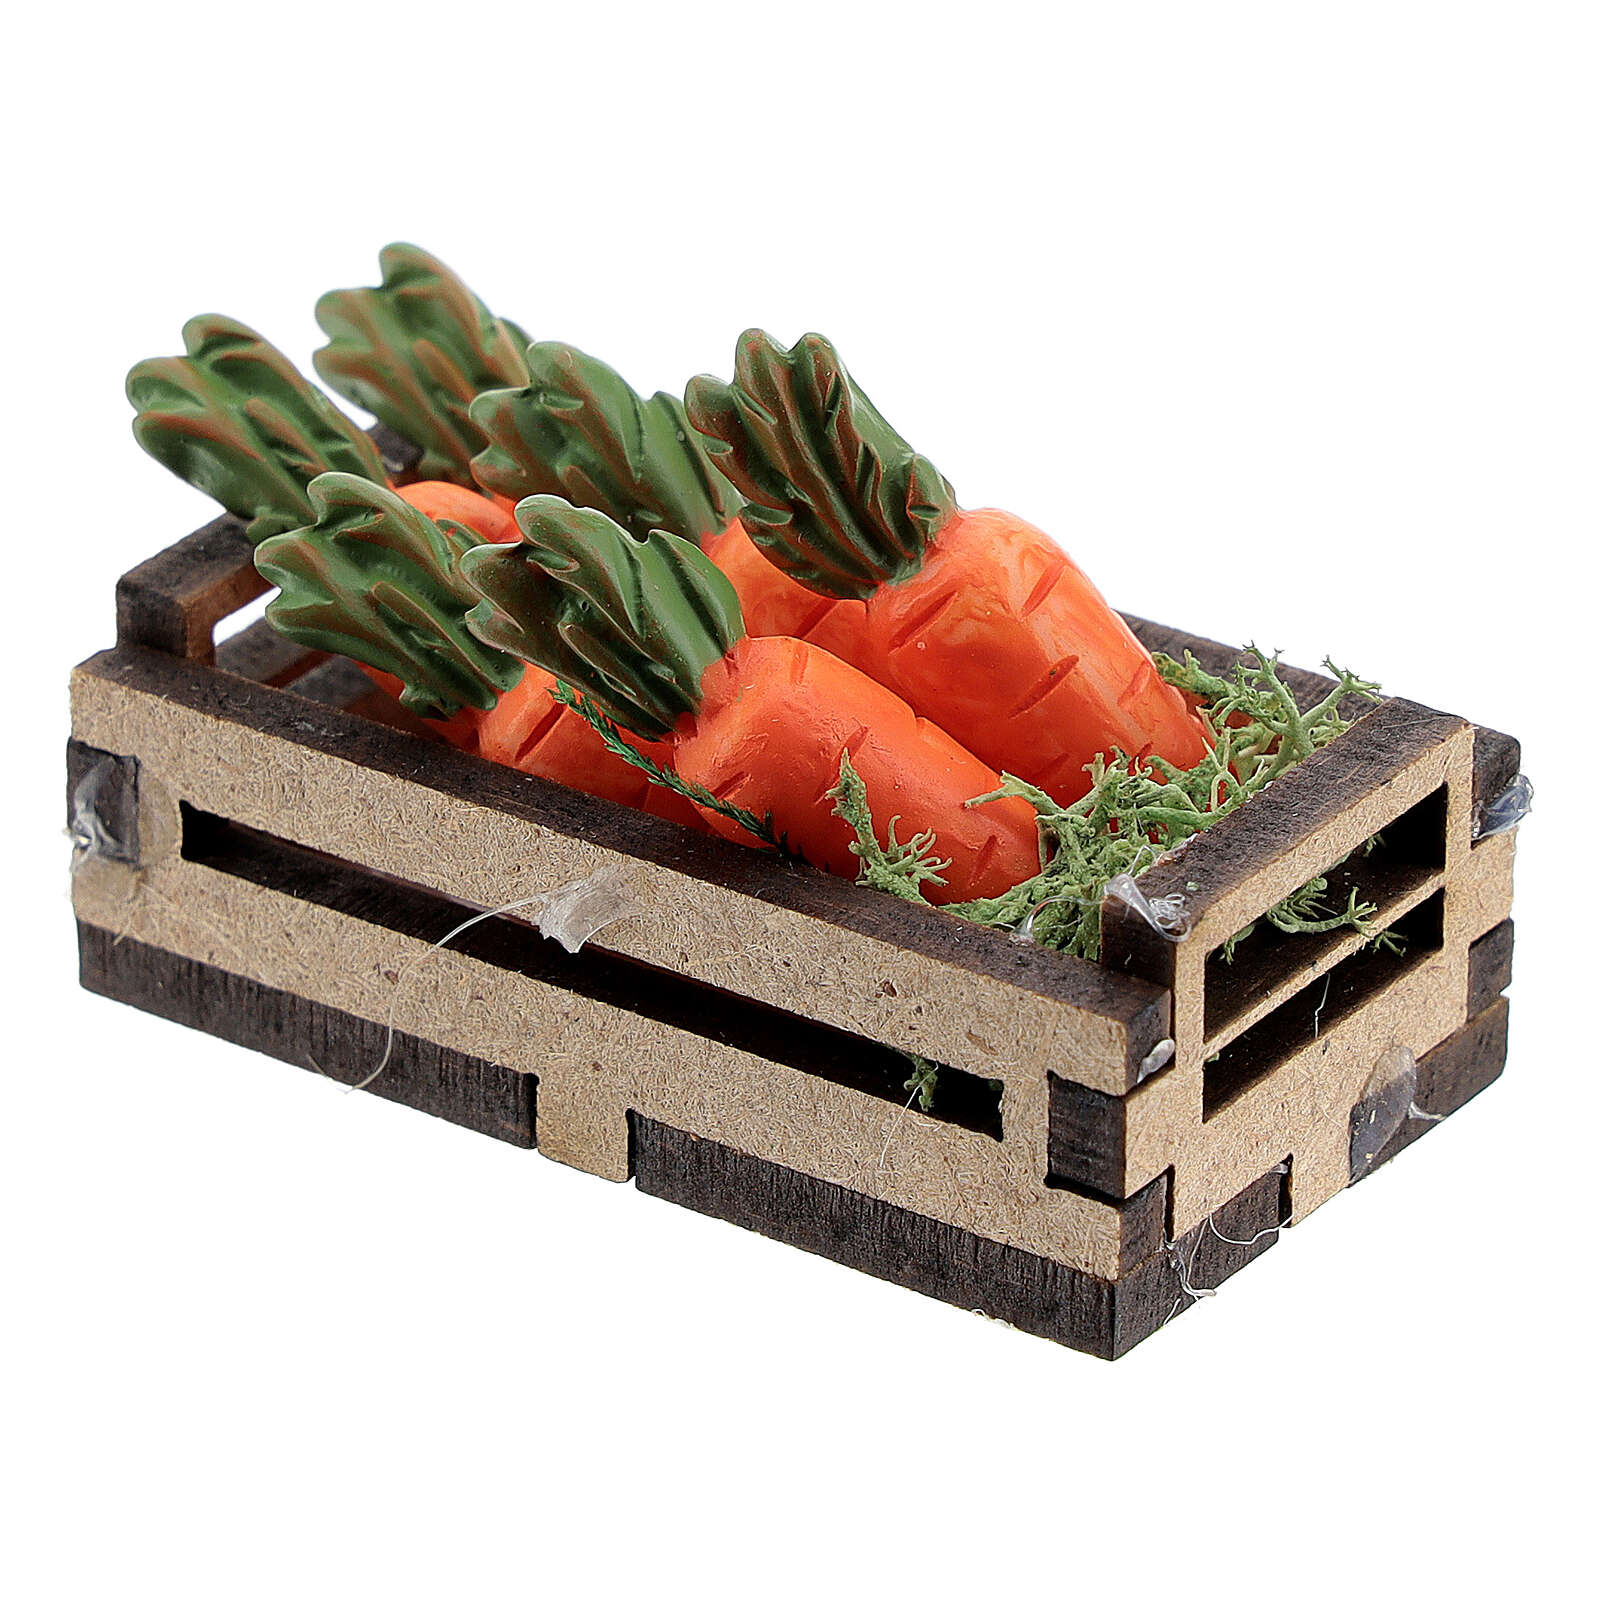 Wood box with carrots for Nativity Scene with 12-14 cm figurines 4